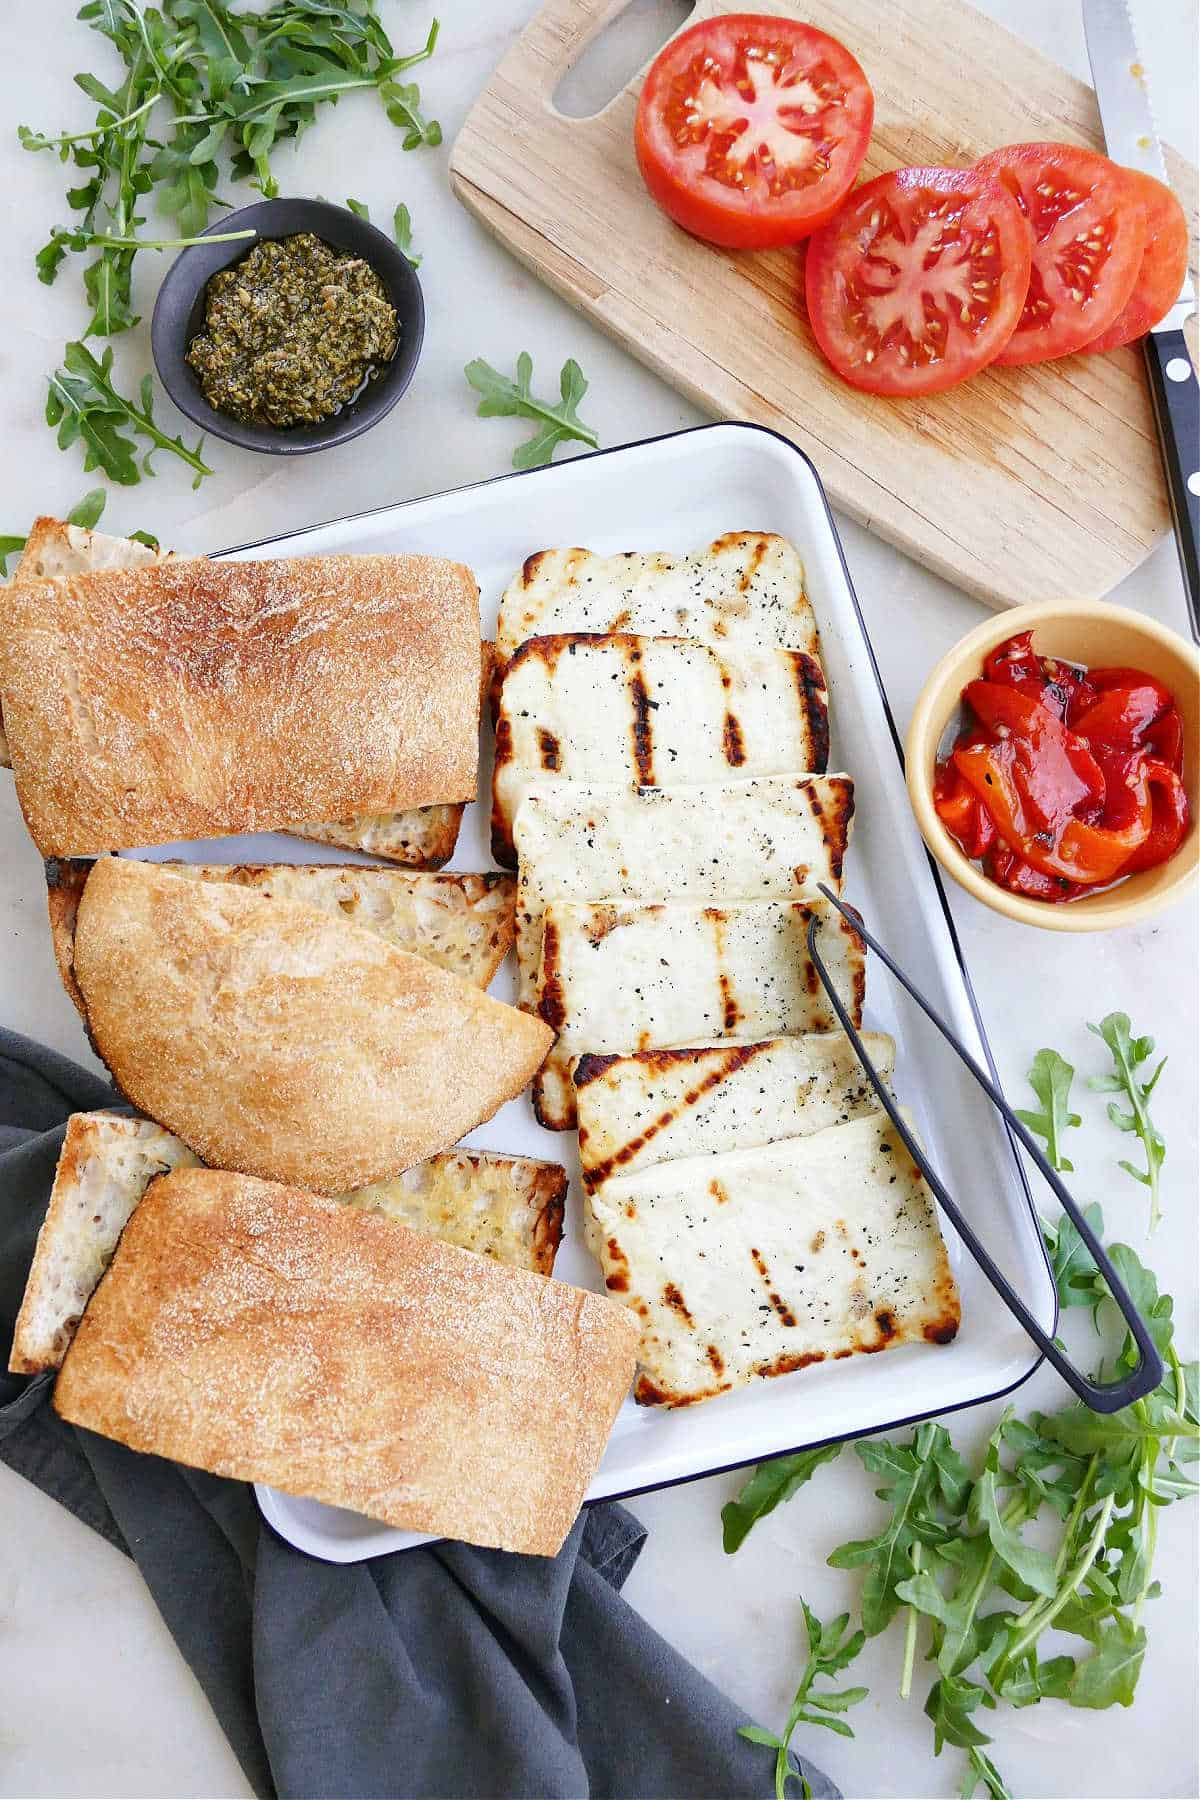 buffet spread for halloumi sandwiches with bread, tomatoes, arugula, peppers, and pesto